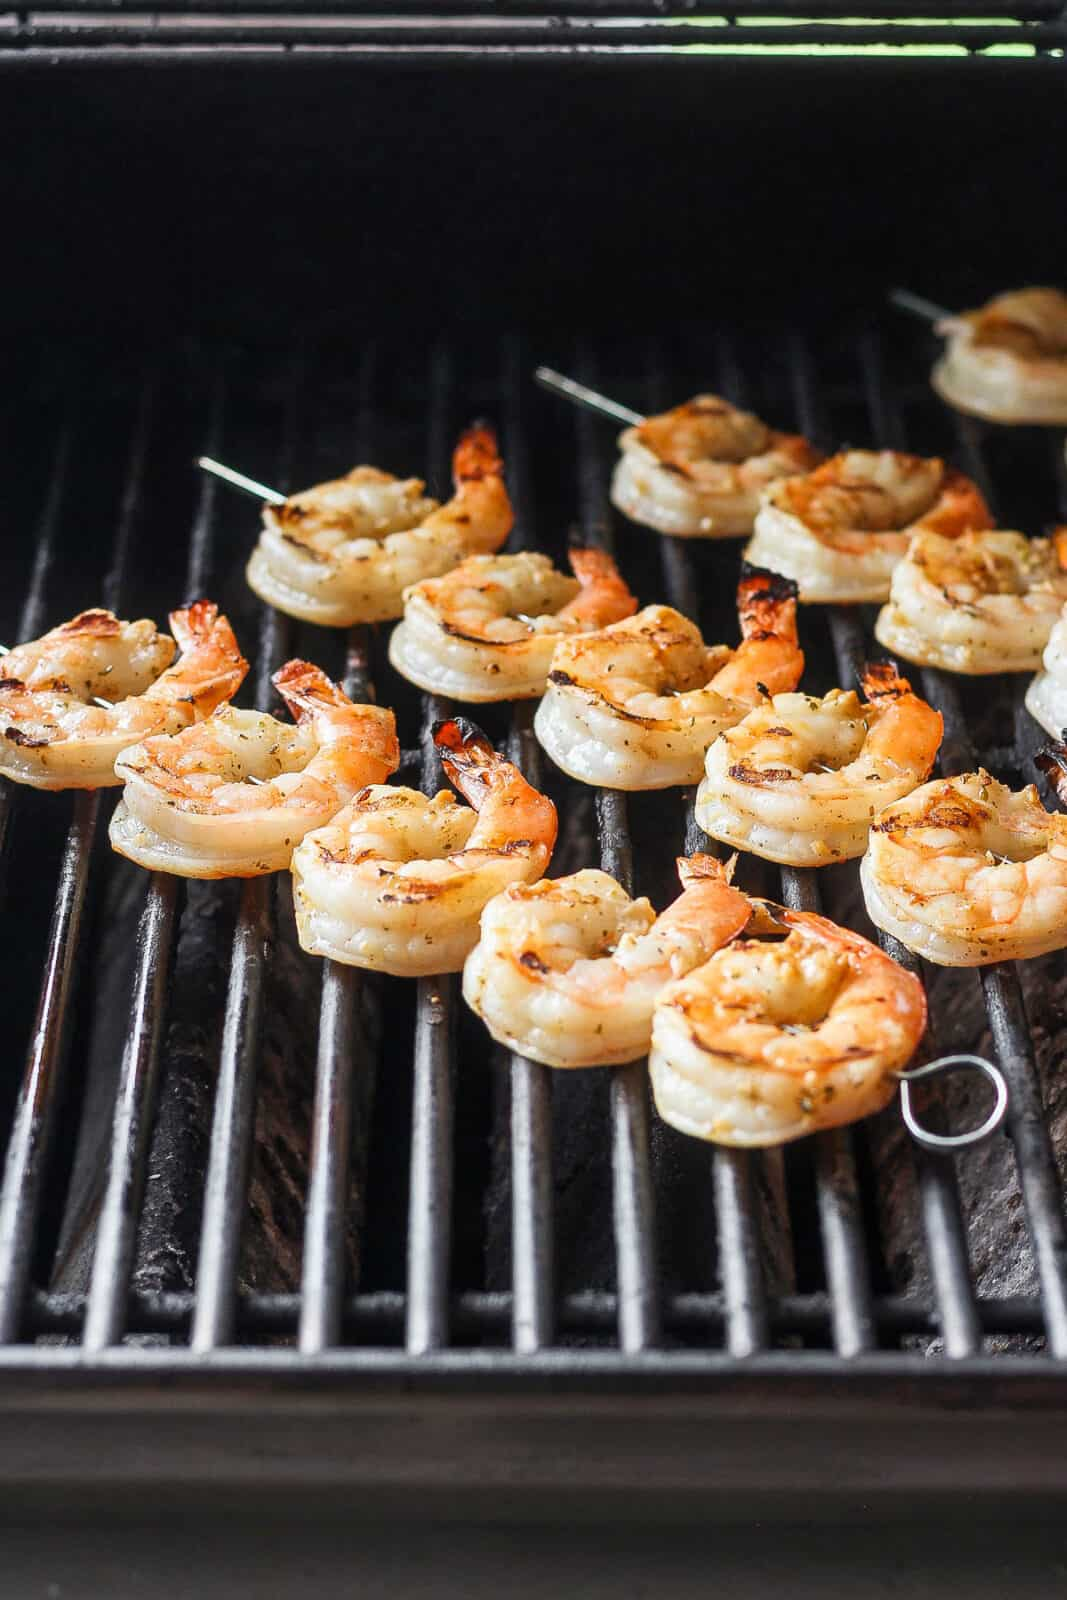 Marinated shrimp on skewers on the grill.